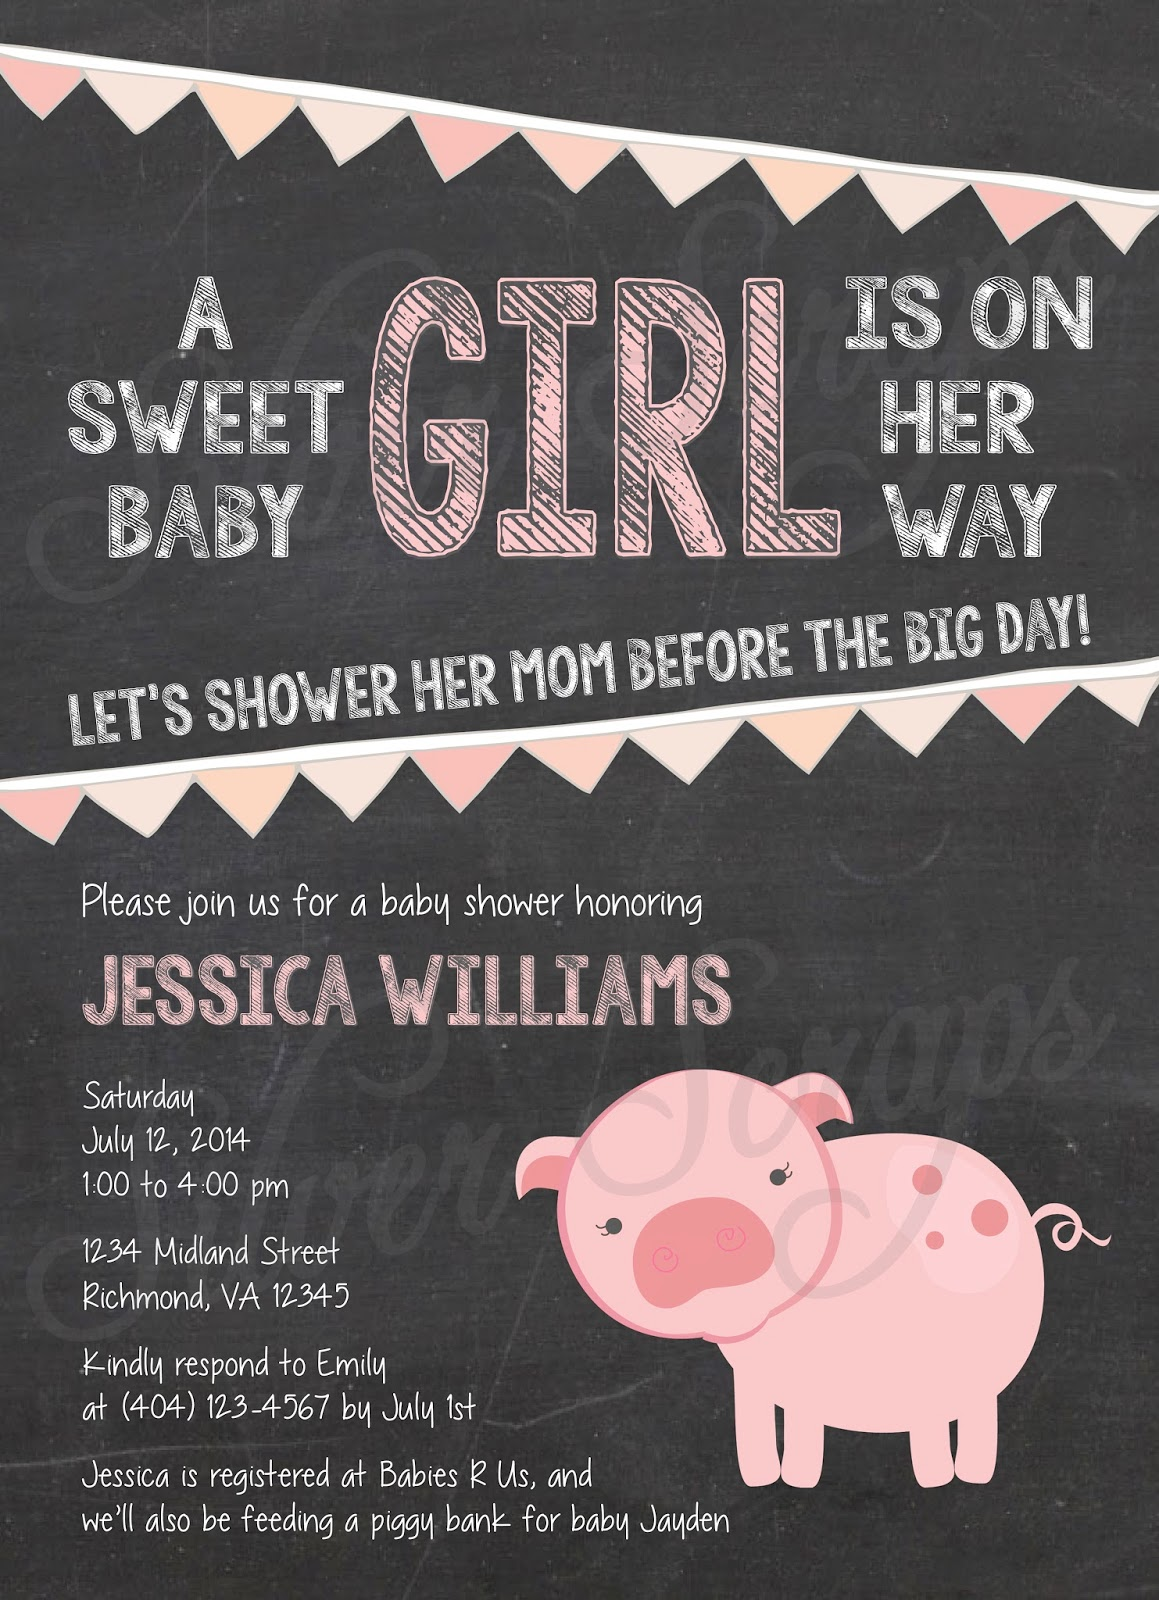 Chalkboard, Bunting and Pink Piggy Custom Girl Baby Shower Invitation - Pig Farm Garland Banner Flags Chalk Black White - 5 Printable Designs - Silver Scraps Peach Light Pink Blush Cream Fruit Slices